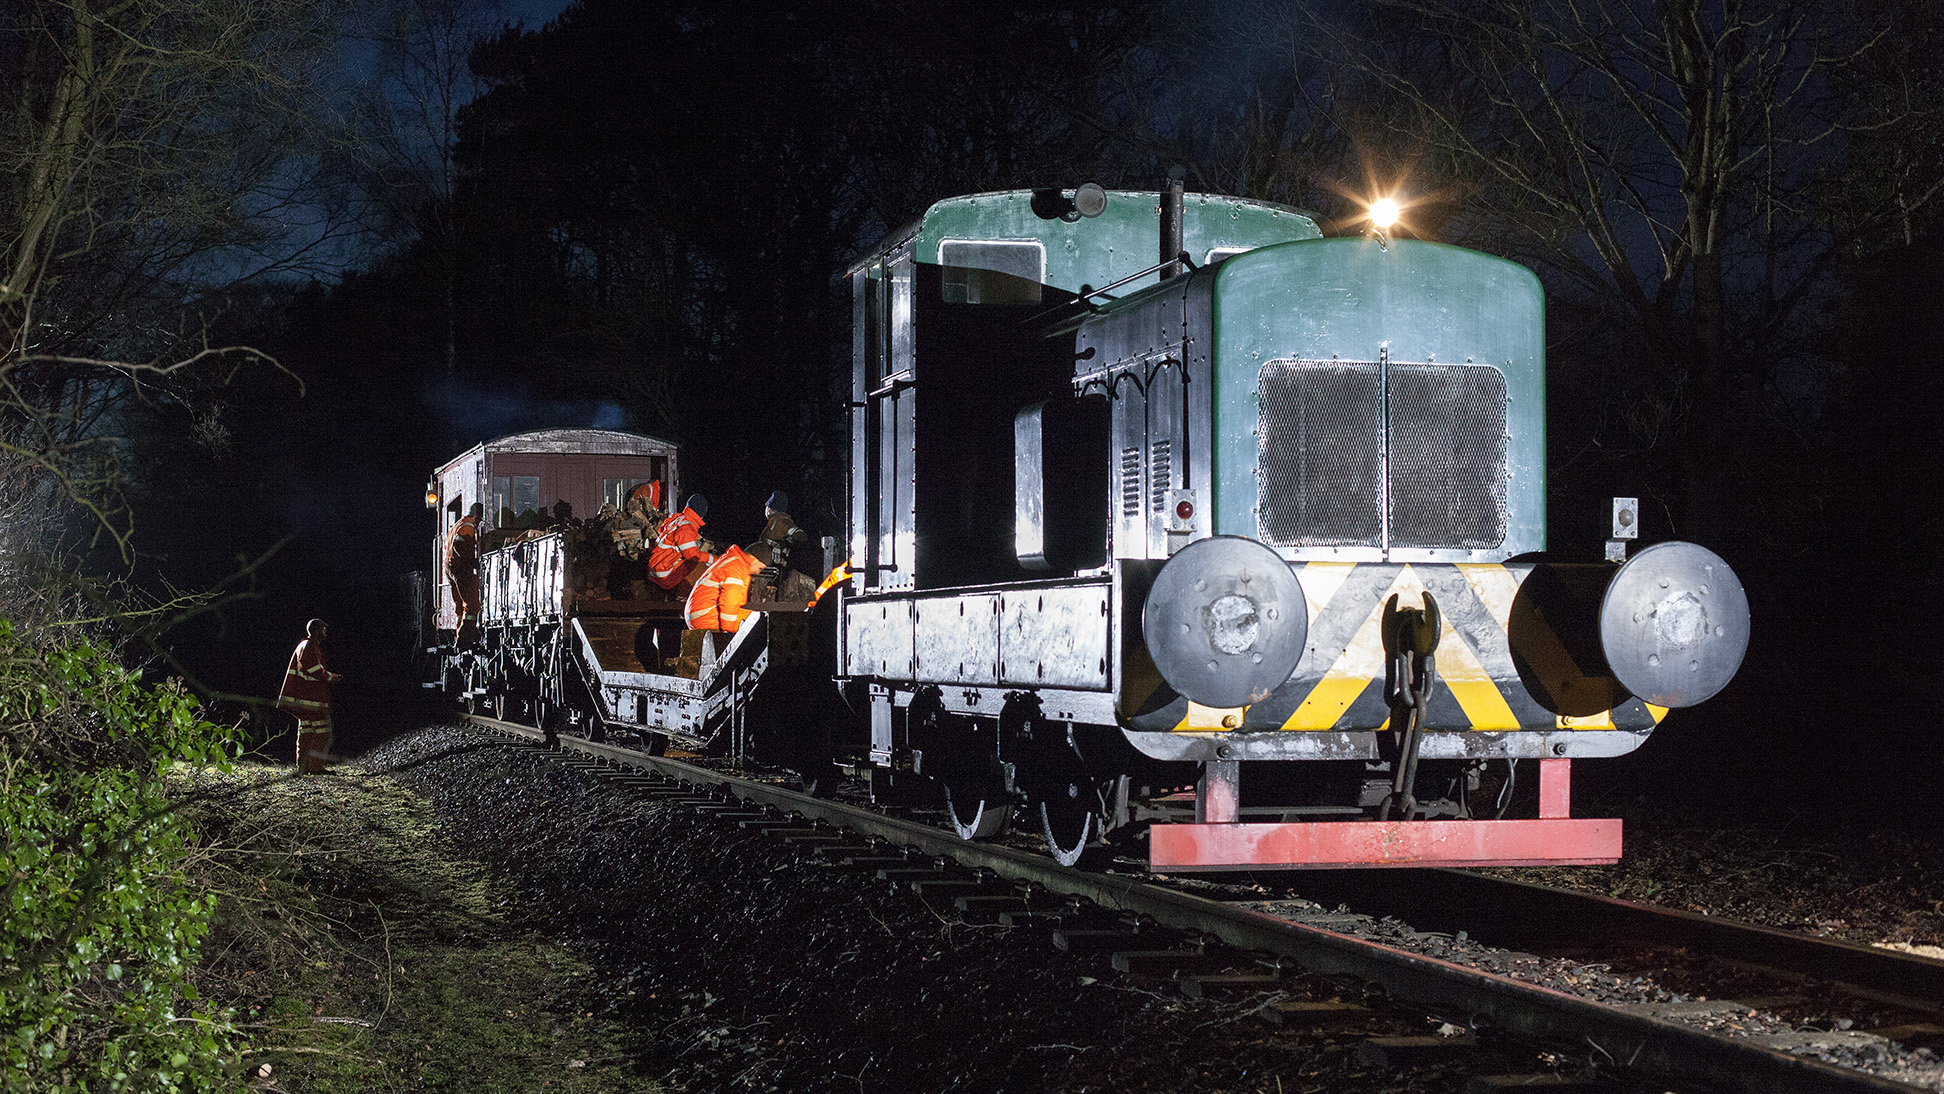 Lineside clearance works. Embsay & Bolton Abbey Steam Railway. 10/01/15